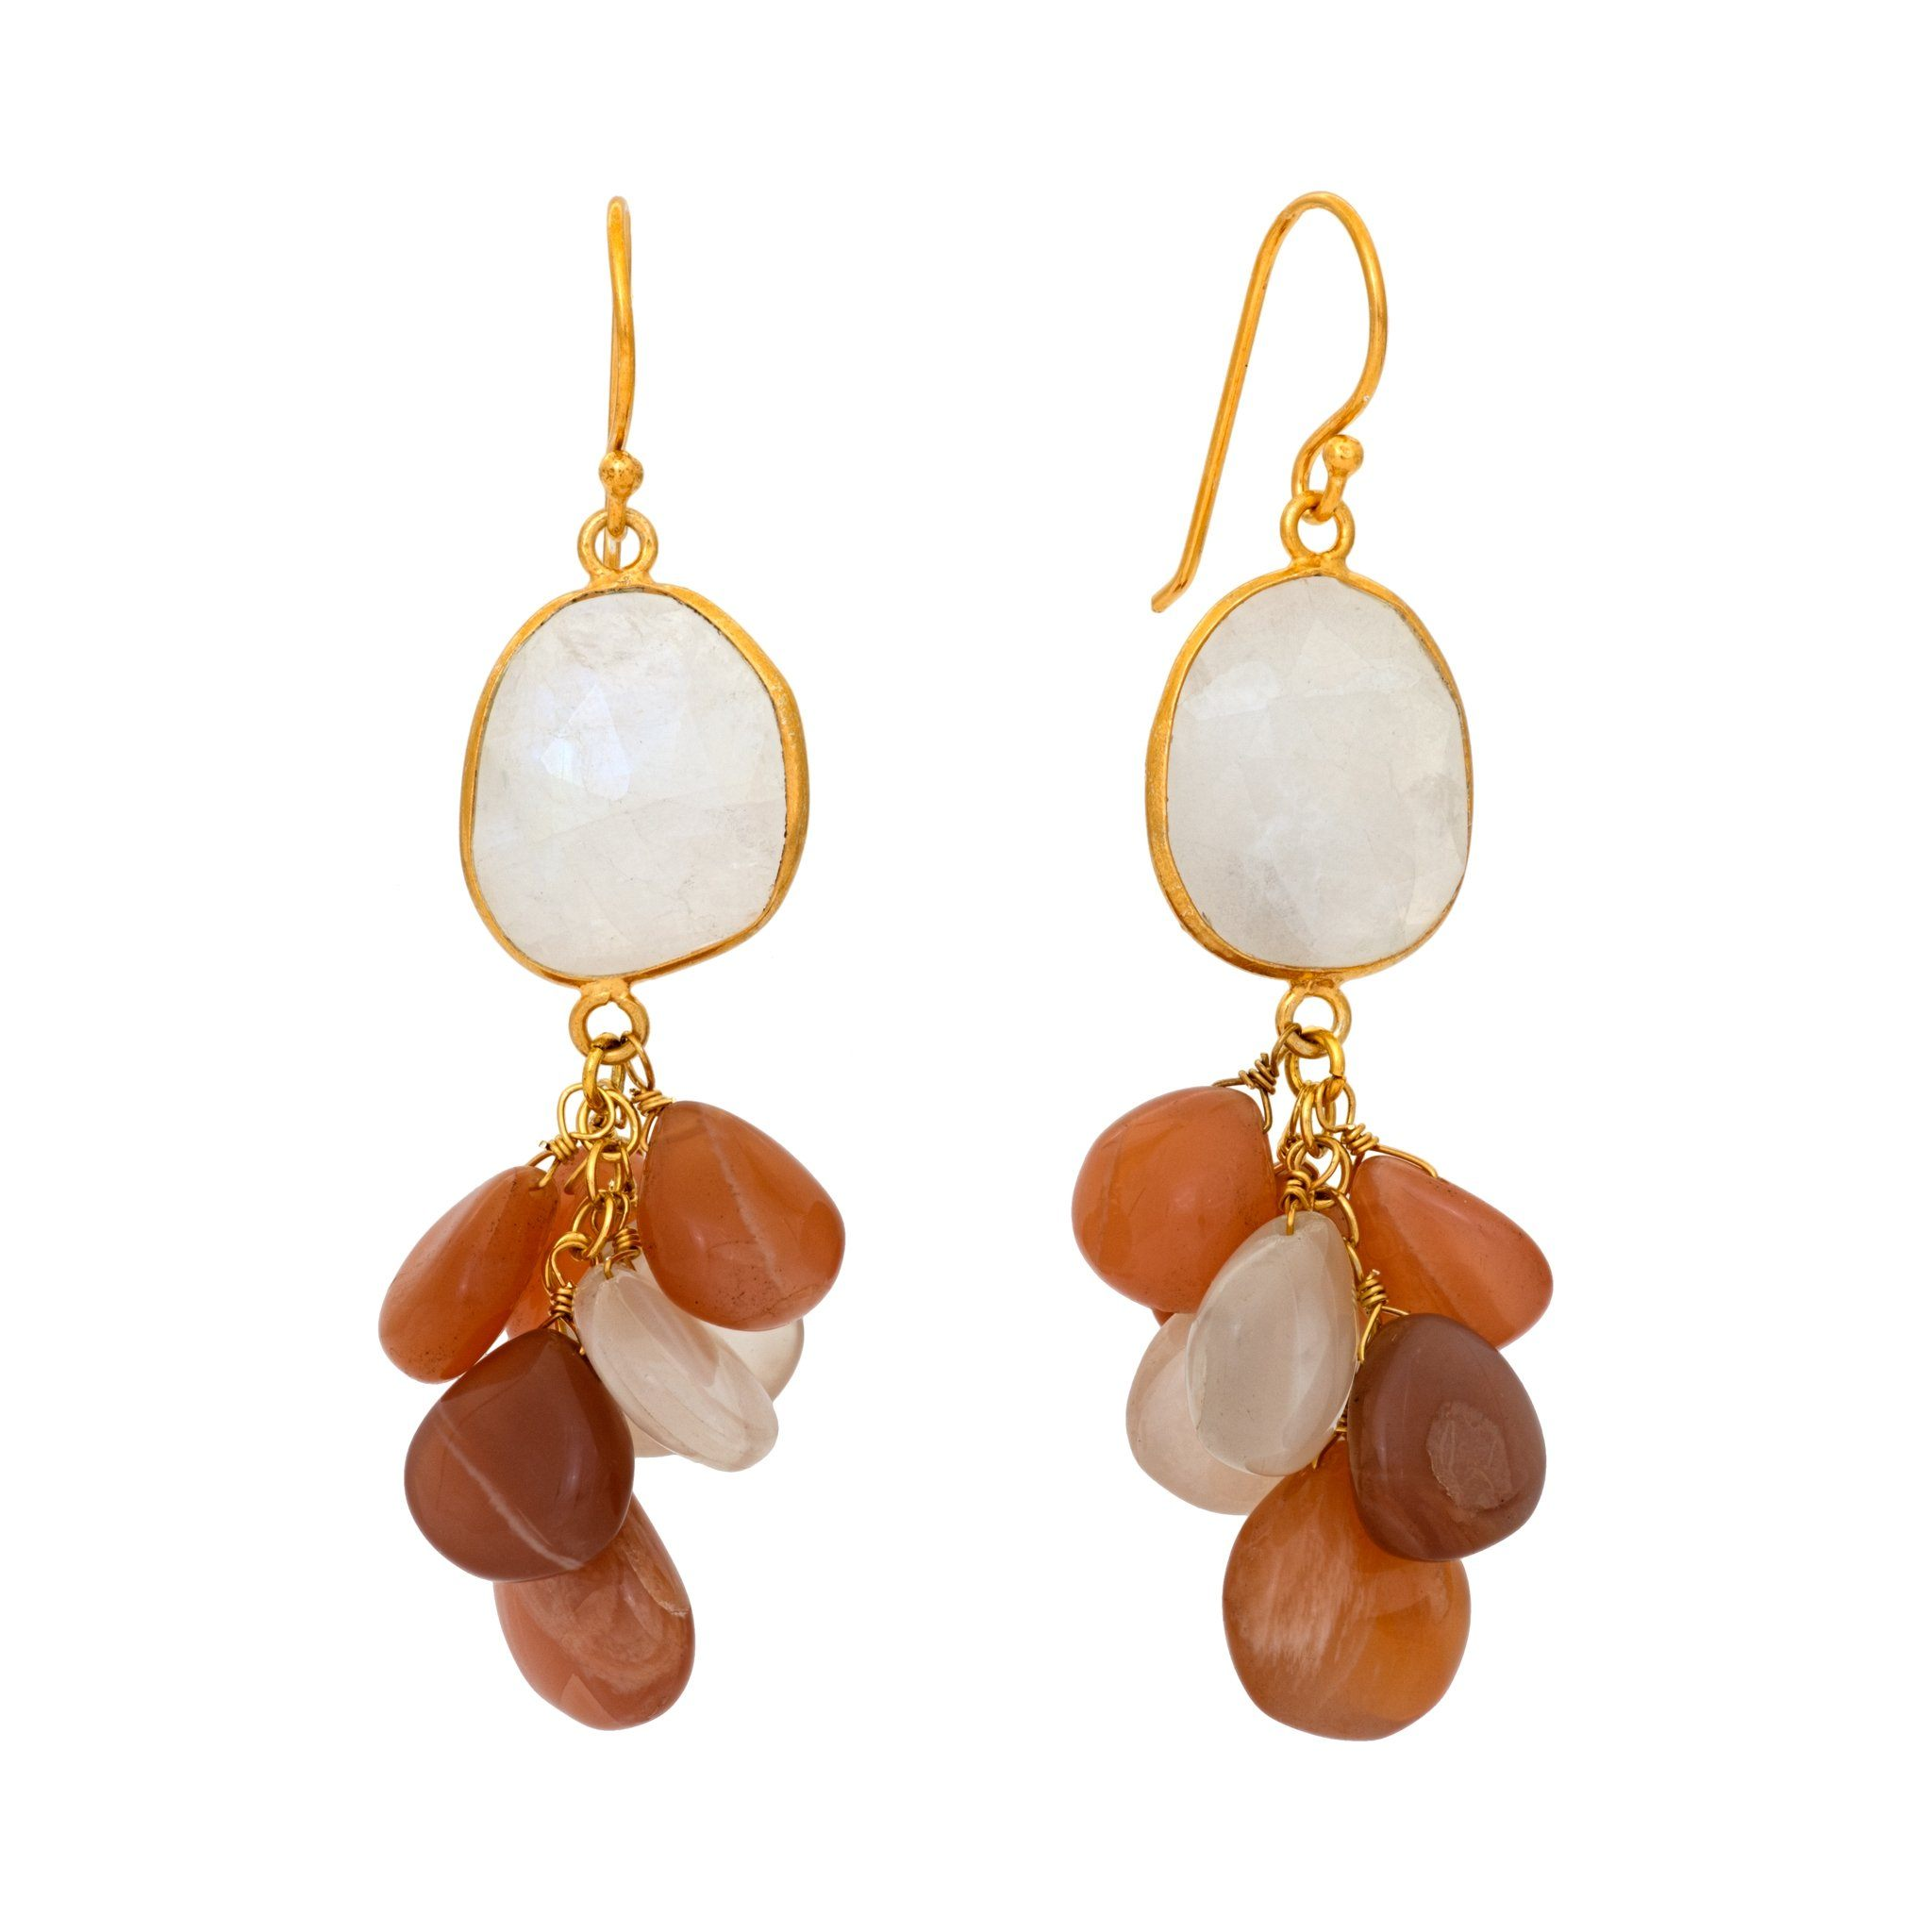 LUZ mix of peach moonstone cluster earrings